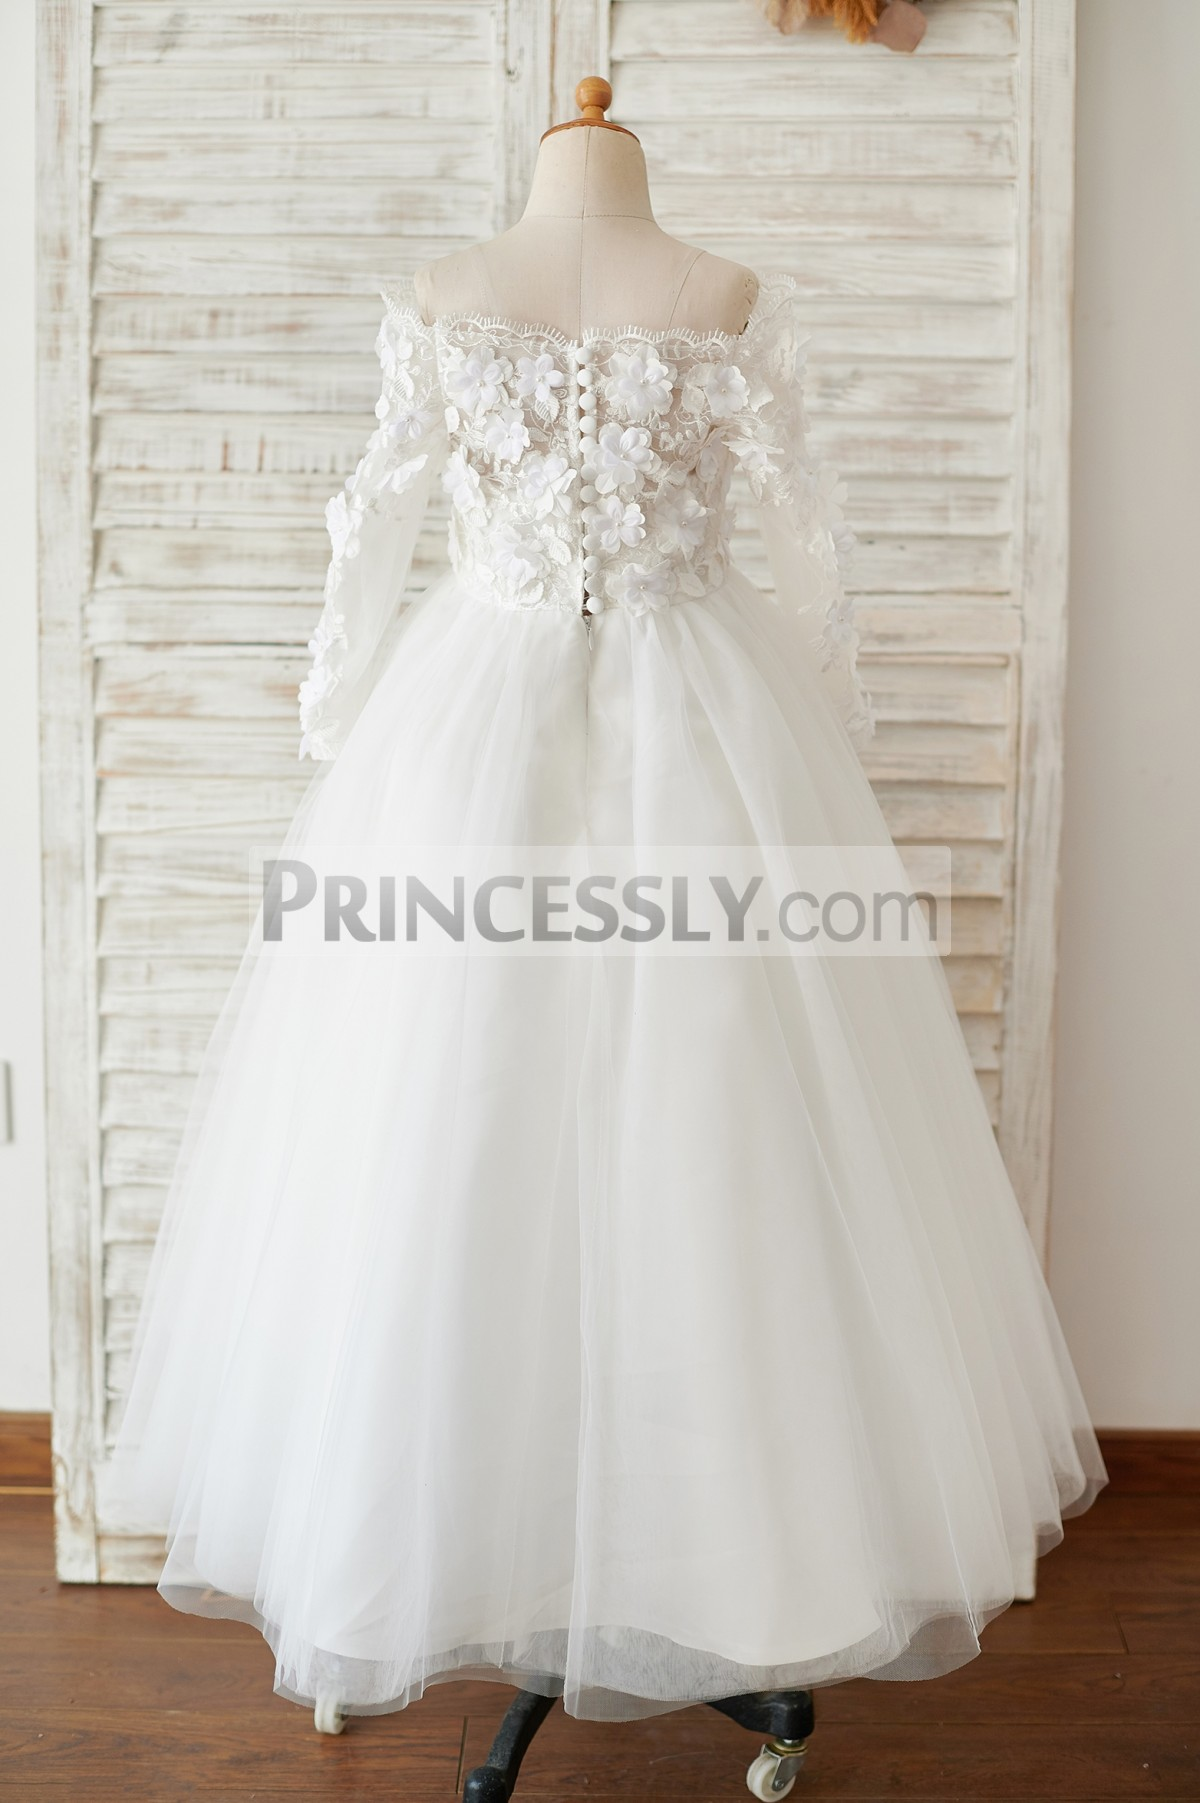 Long lace sleeves lace tulle ivory wedding baby girl dress with flowers appliques